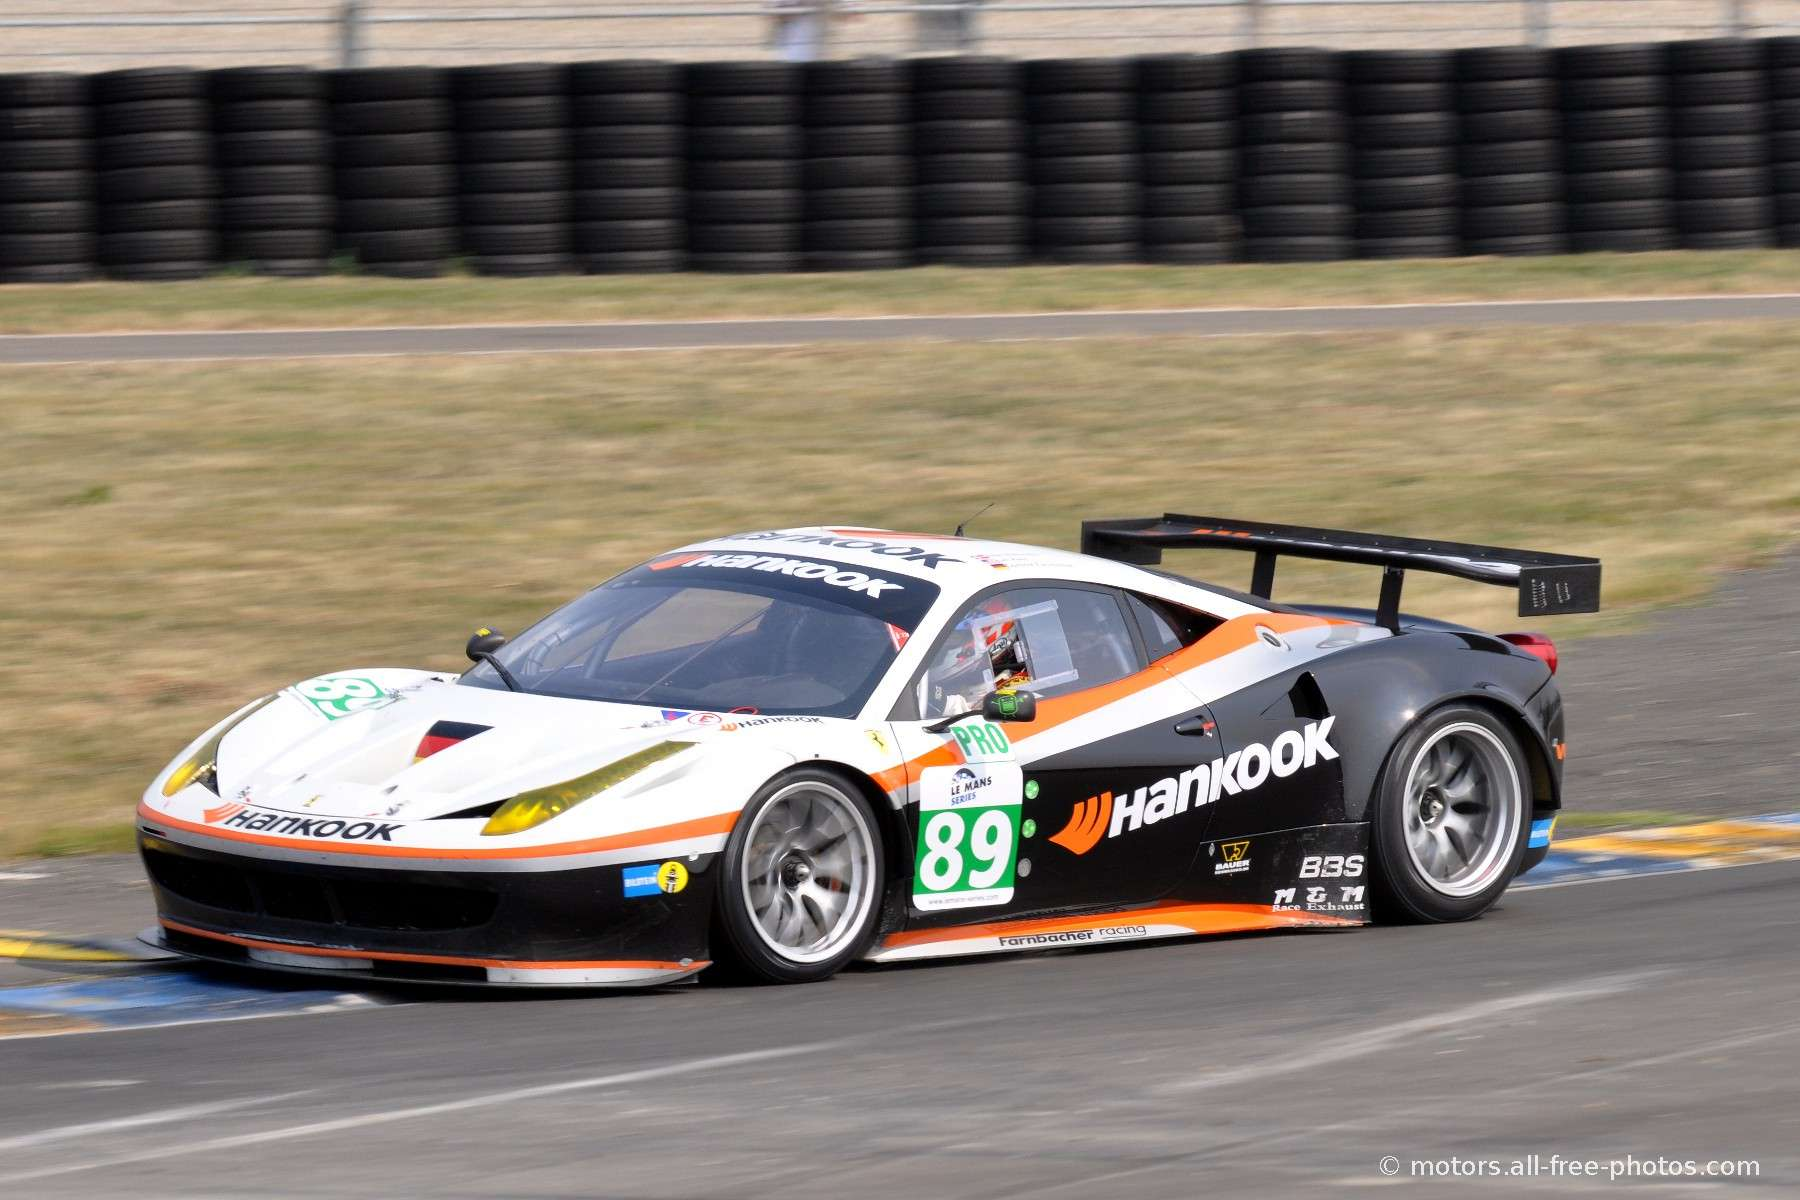 Ferrari 458 Italia - Team Hankook Farnbacher